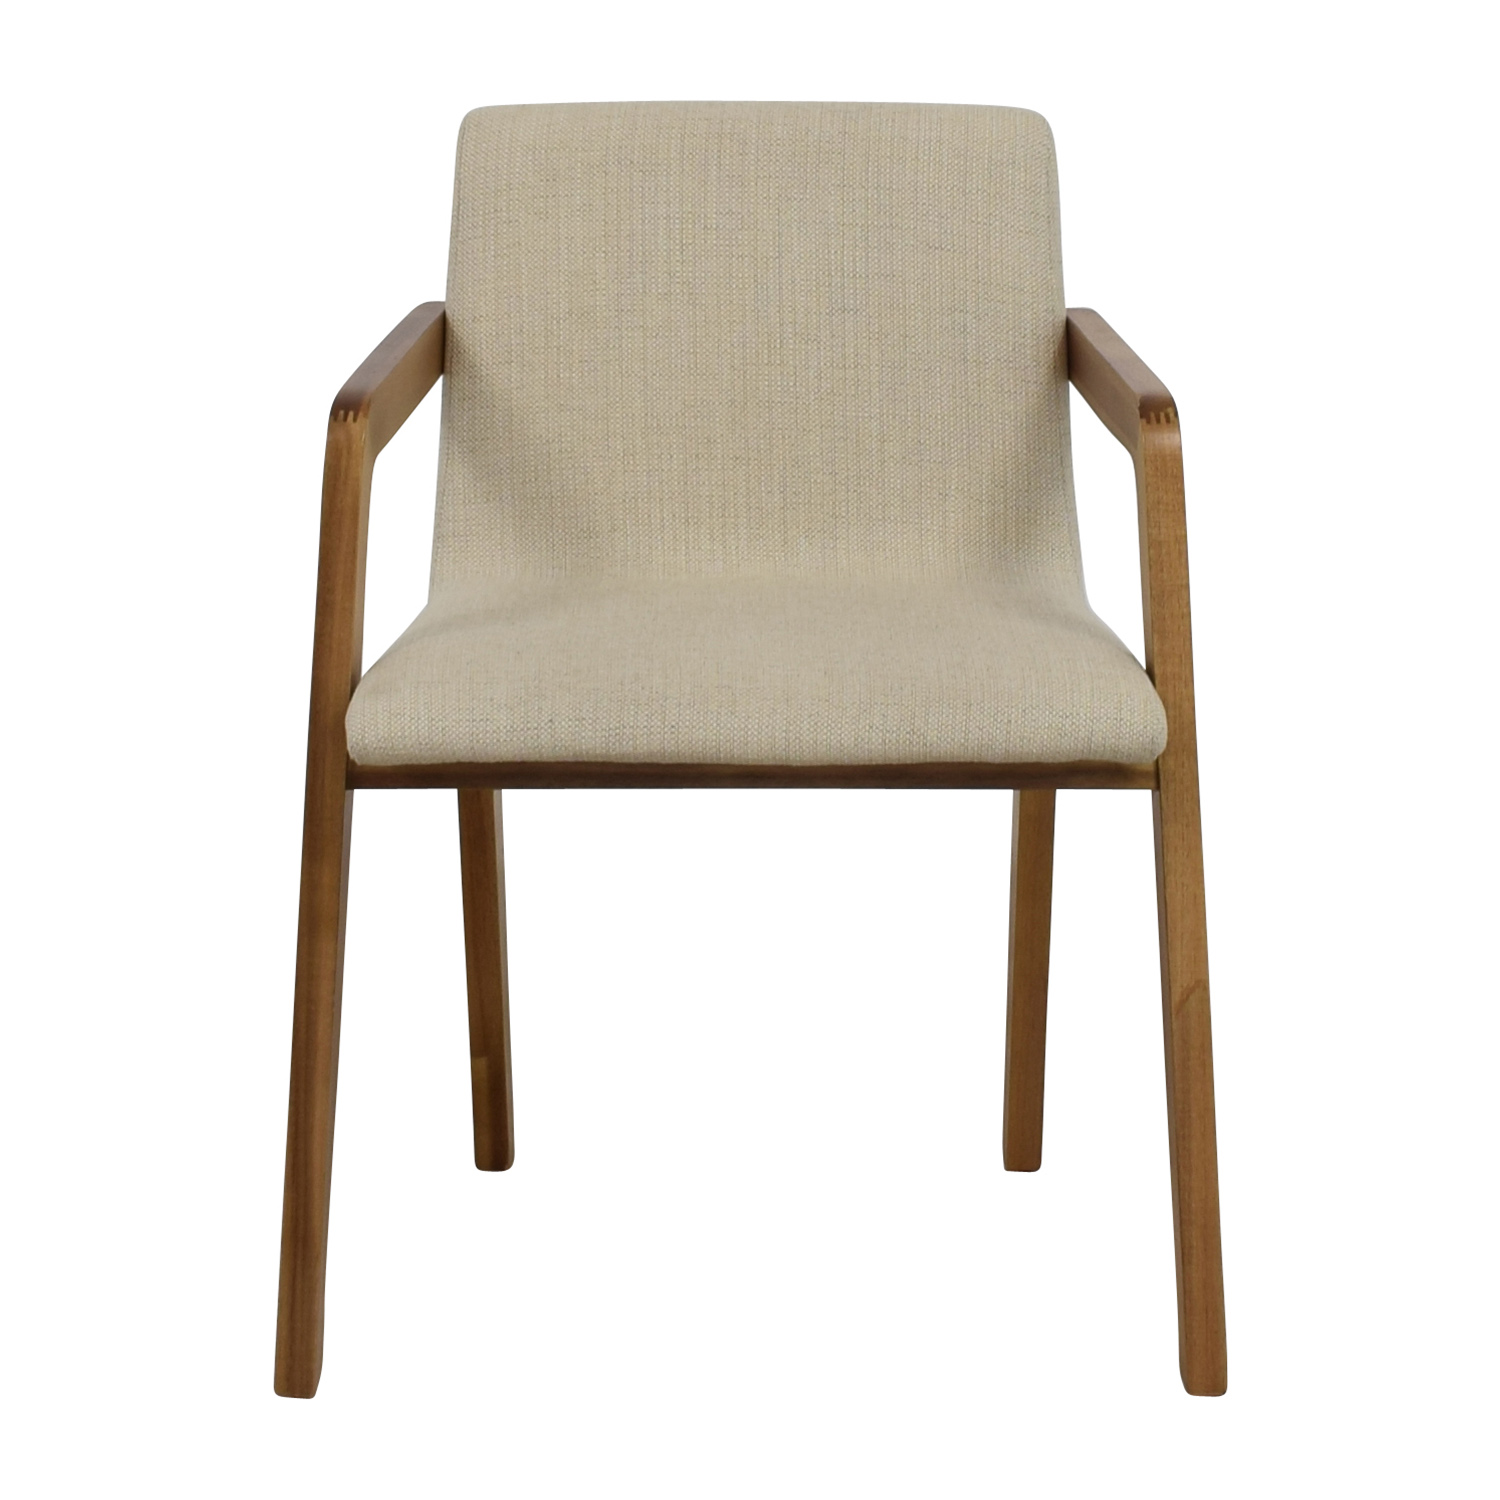 CB2 CB2 Natural Mid-Century Accent Chair Accent Chairs